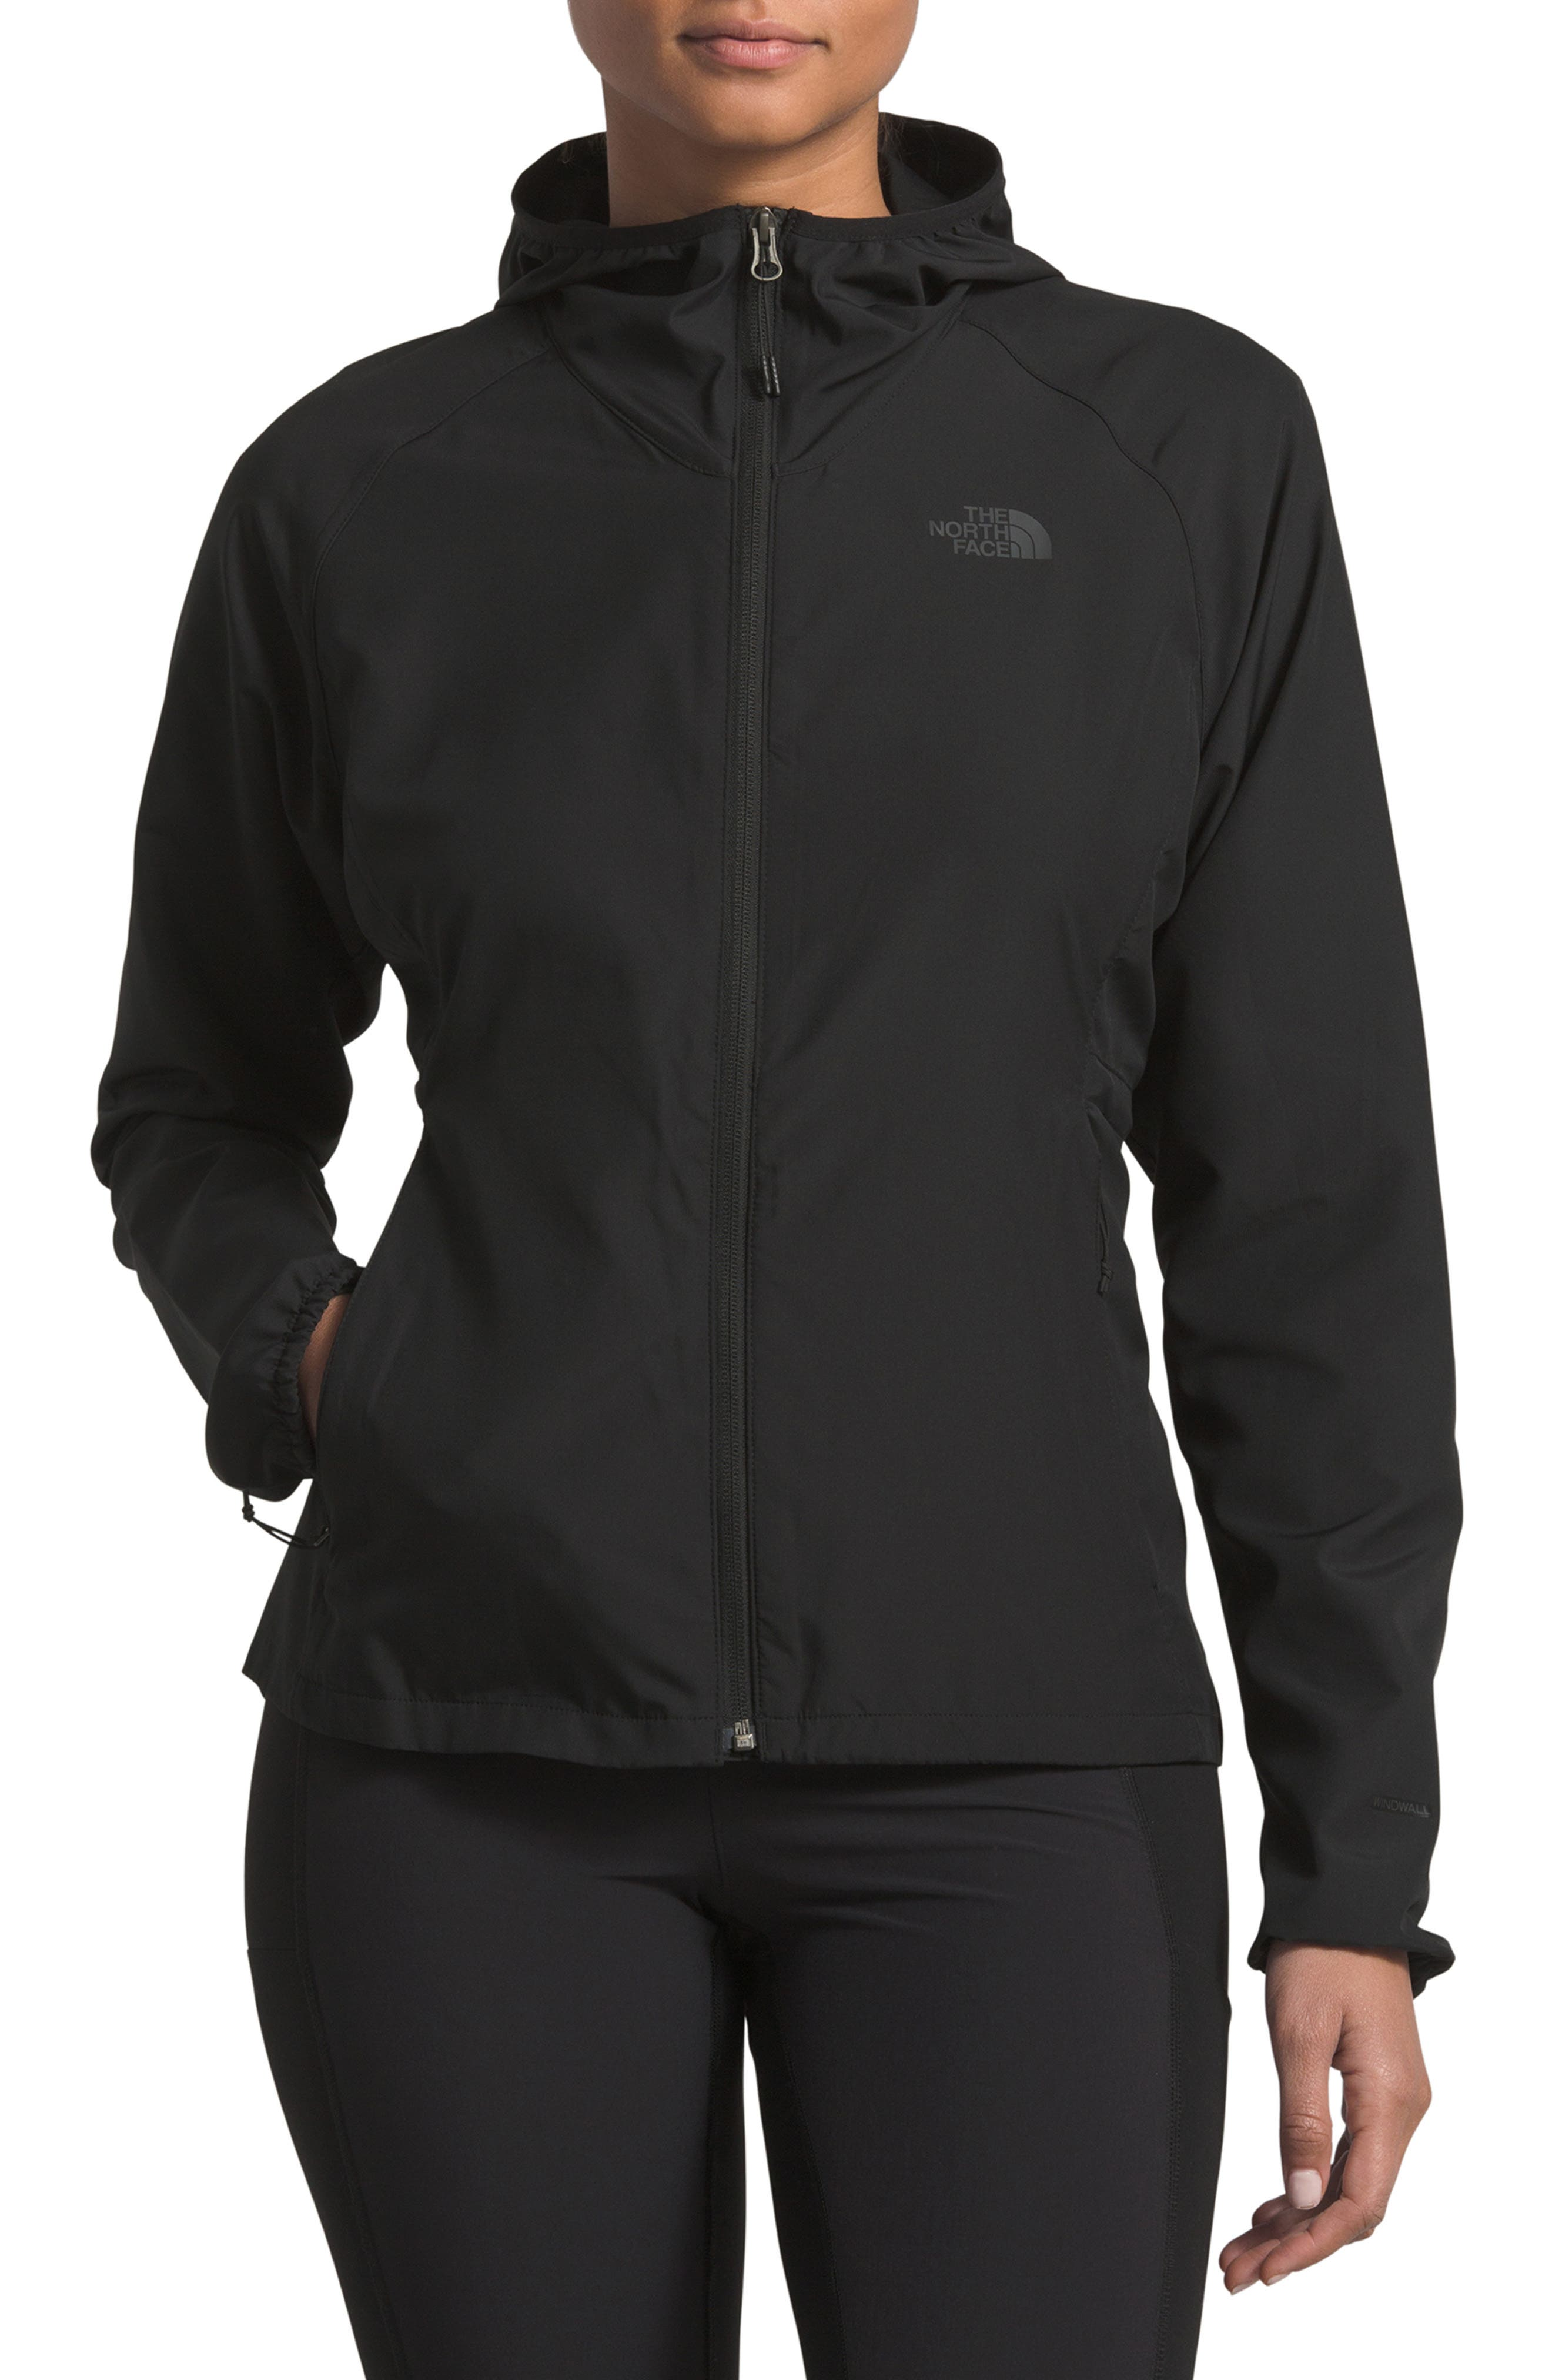 THE NORTH FACE Flyweight Hooded Jacket, Main, color, 001